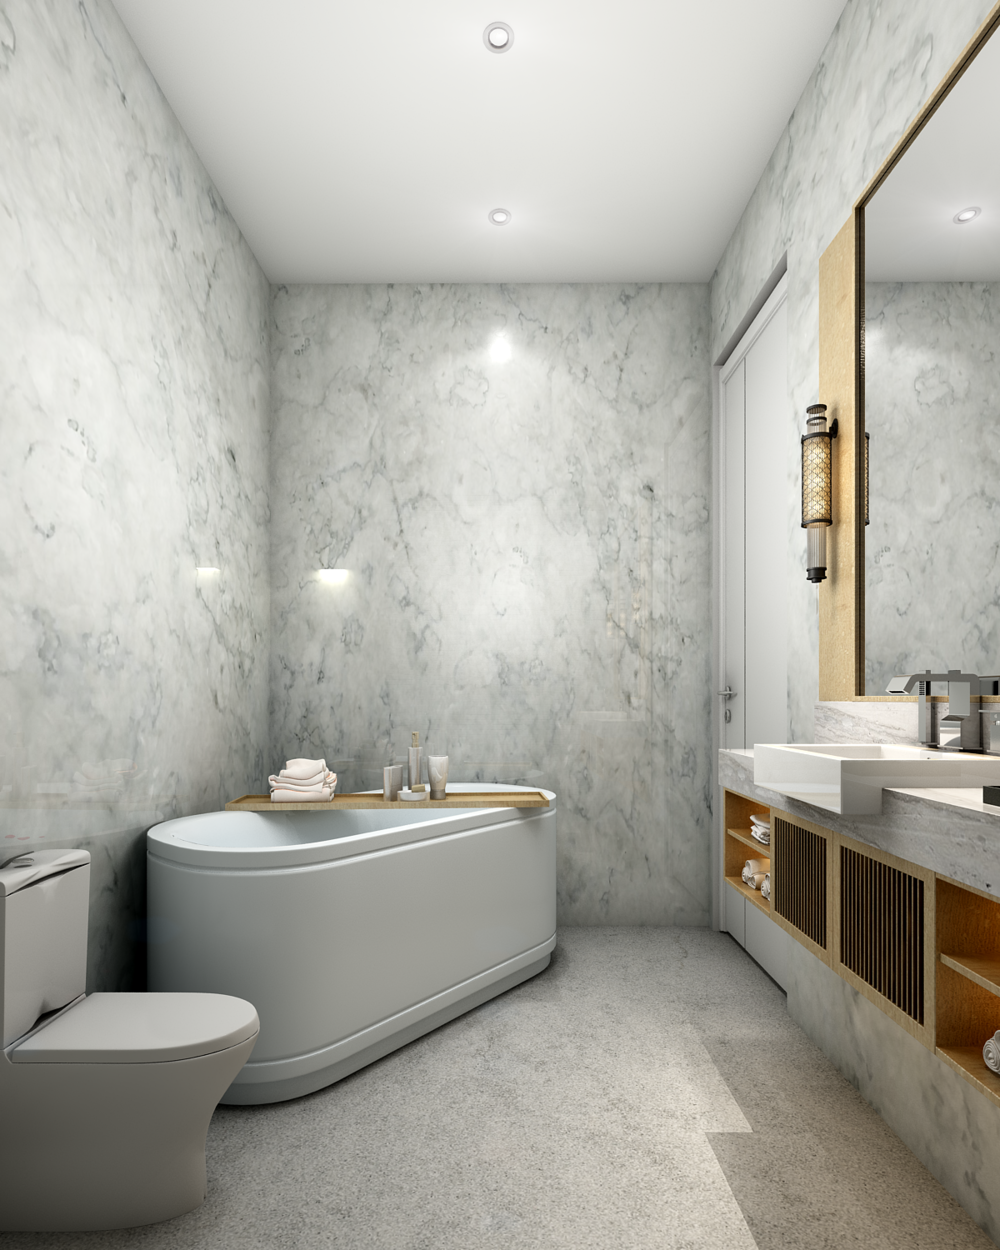 unit5-view-bath-27-02.png